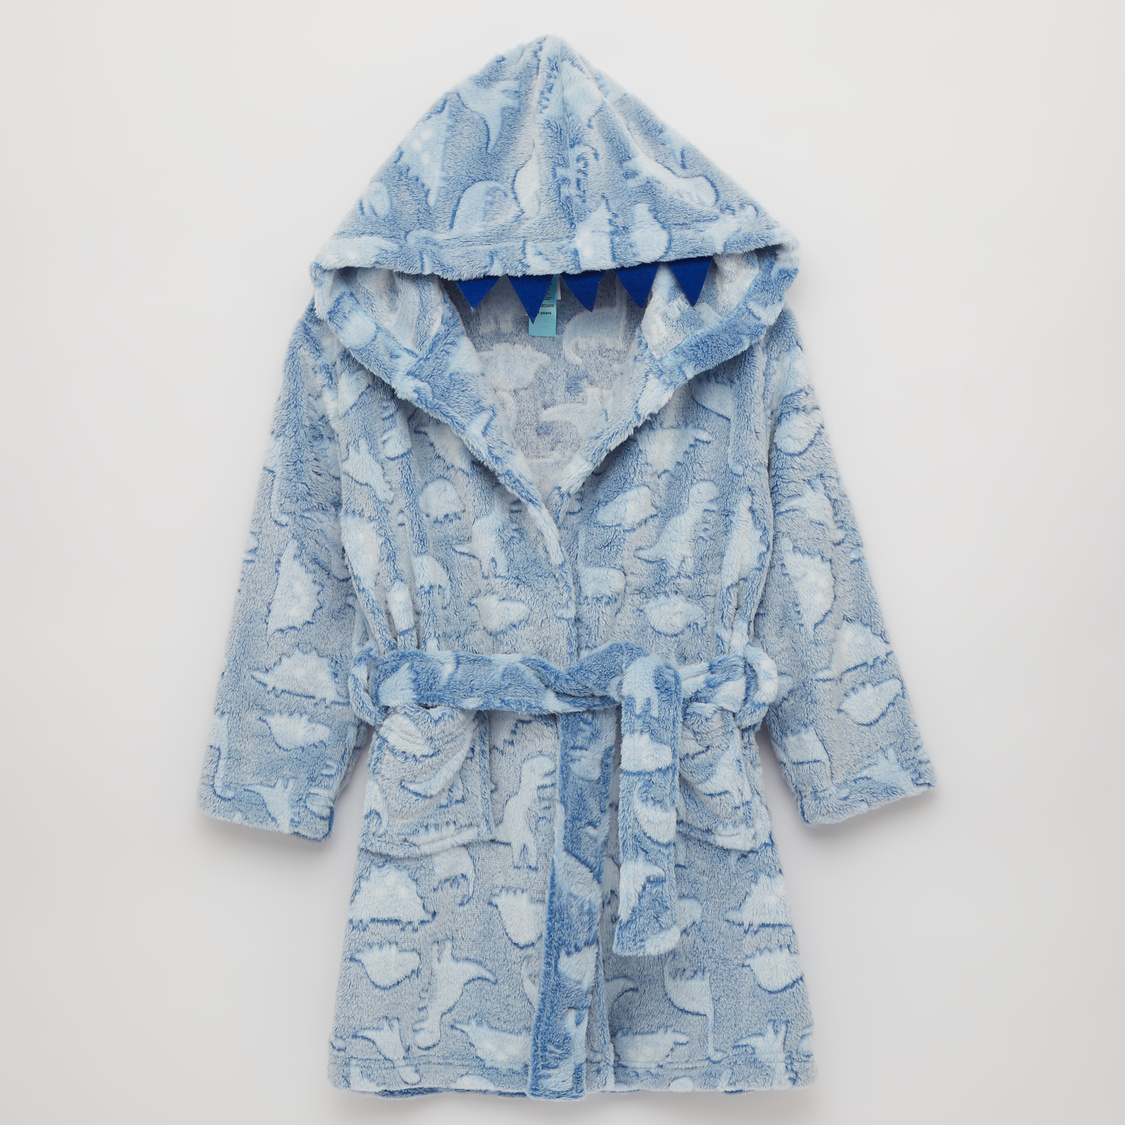 Cozy Collection Textured Robe with Tie Ups and Hood